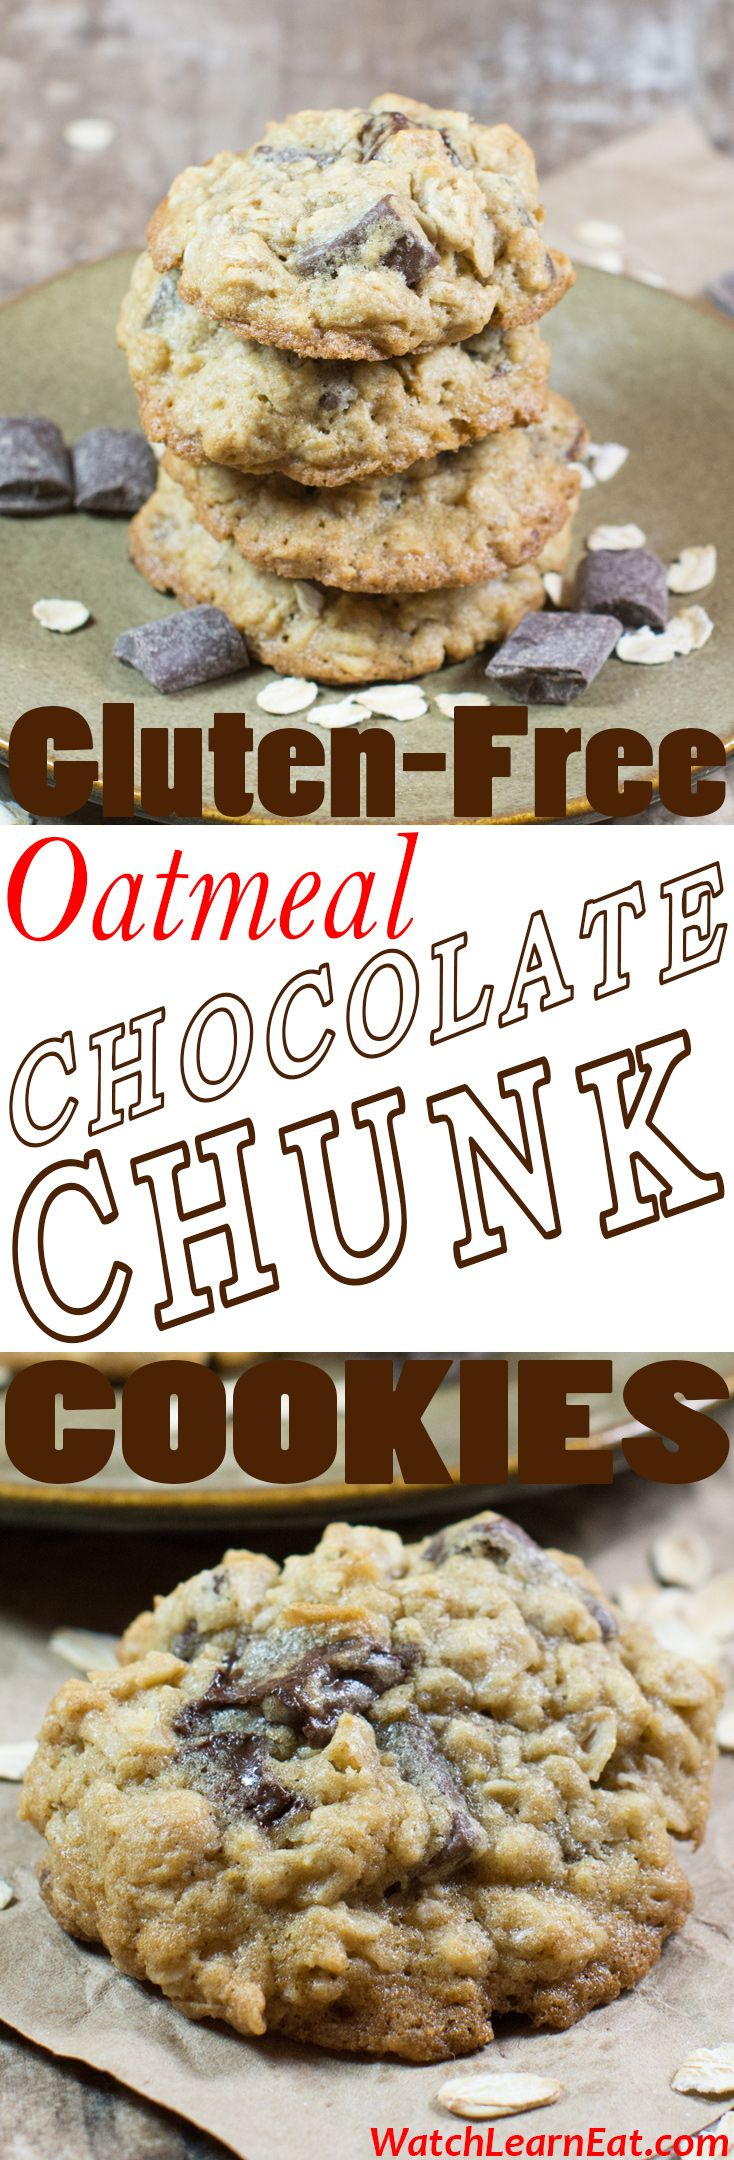 These soft and chewy Gluten-Free Oatmeal Chocolate Chunk Cookies will please both gluten-free and non-gluten-free eaters alike.